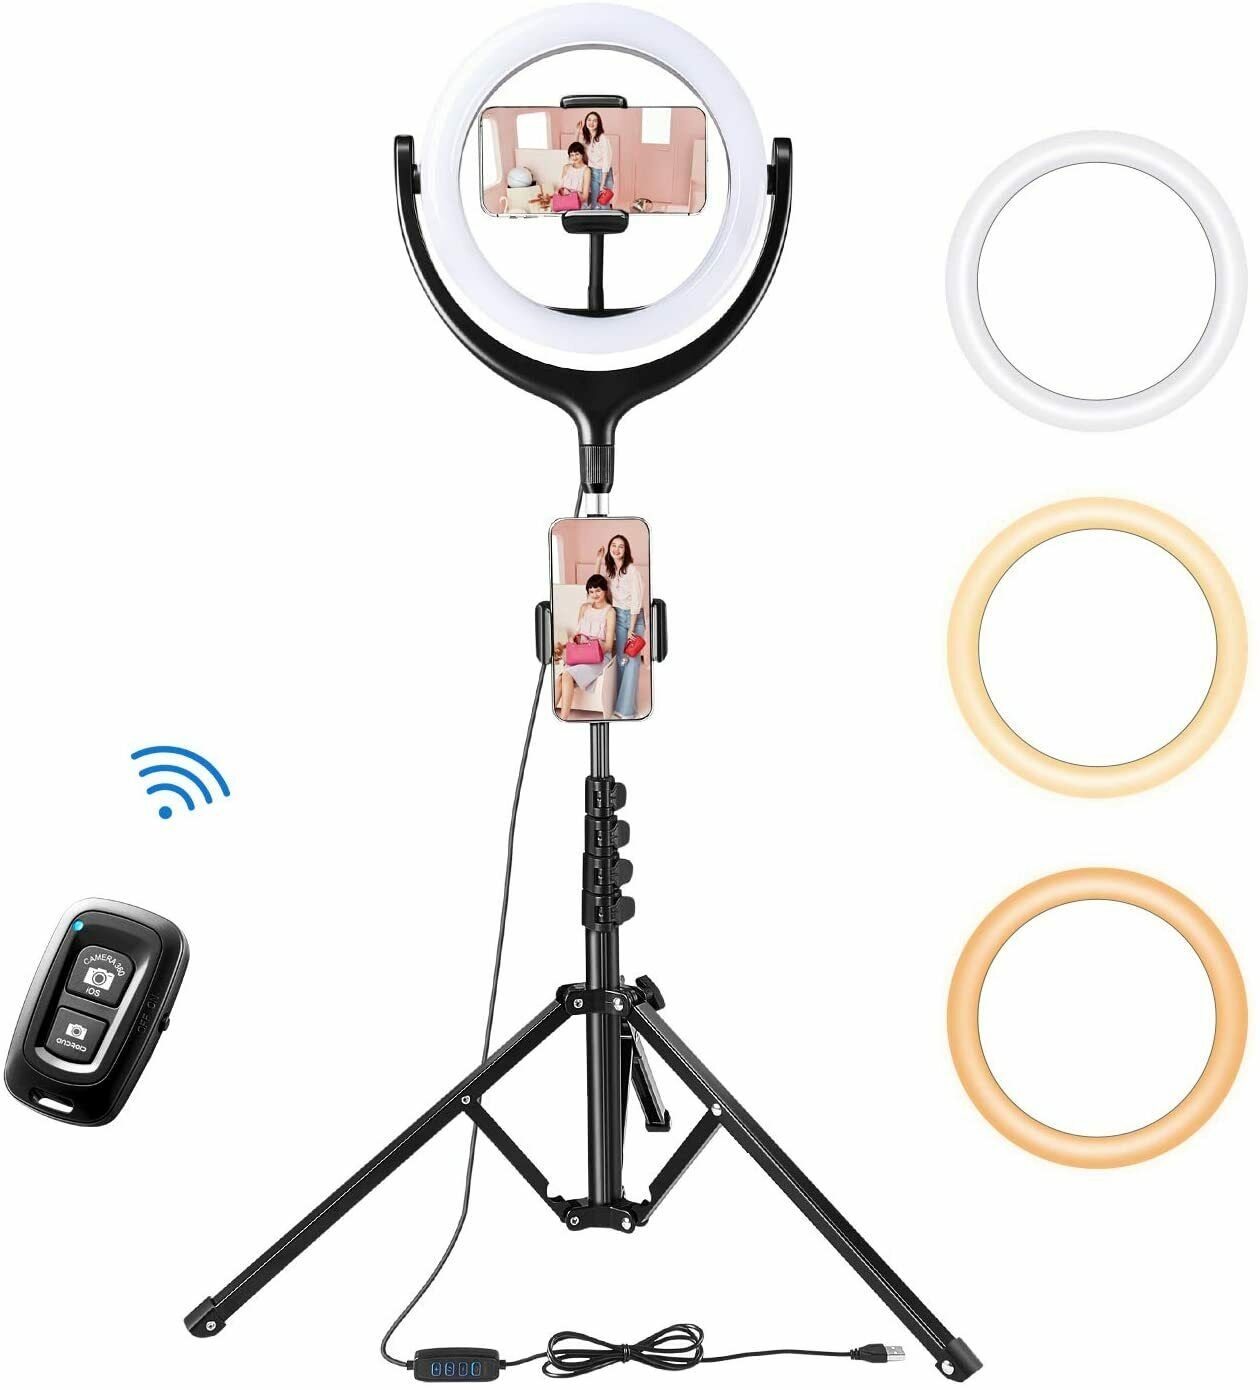 TaoTronics 10 Selfie Ring Light With 61 Tripod Stand 2 Phone Holders And Blue - $37.99